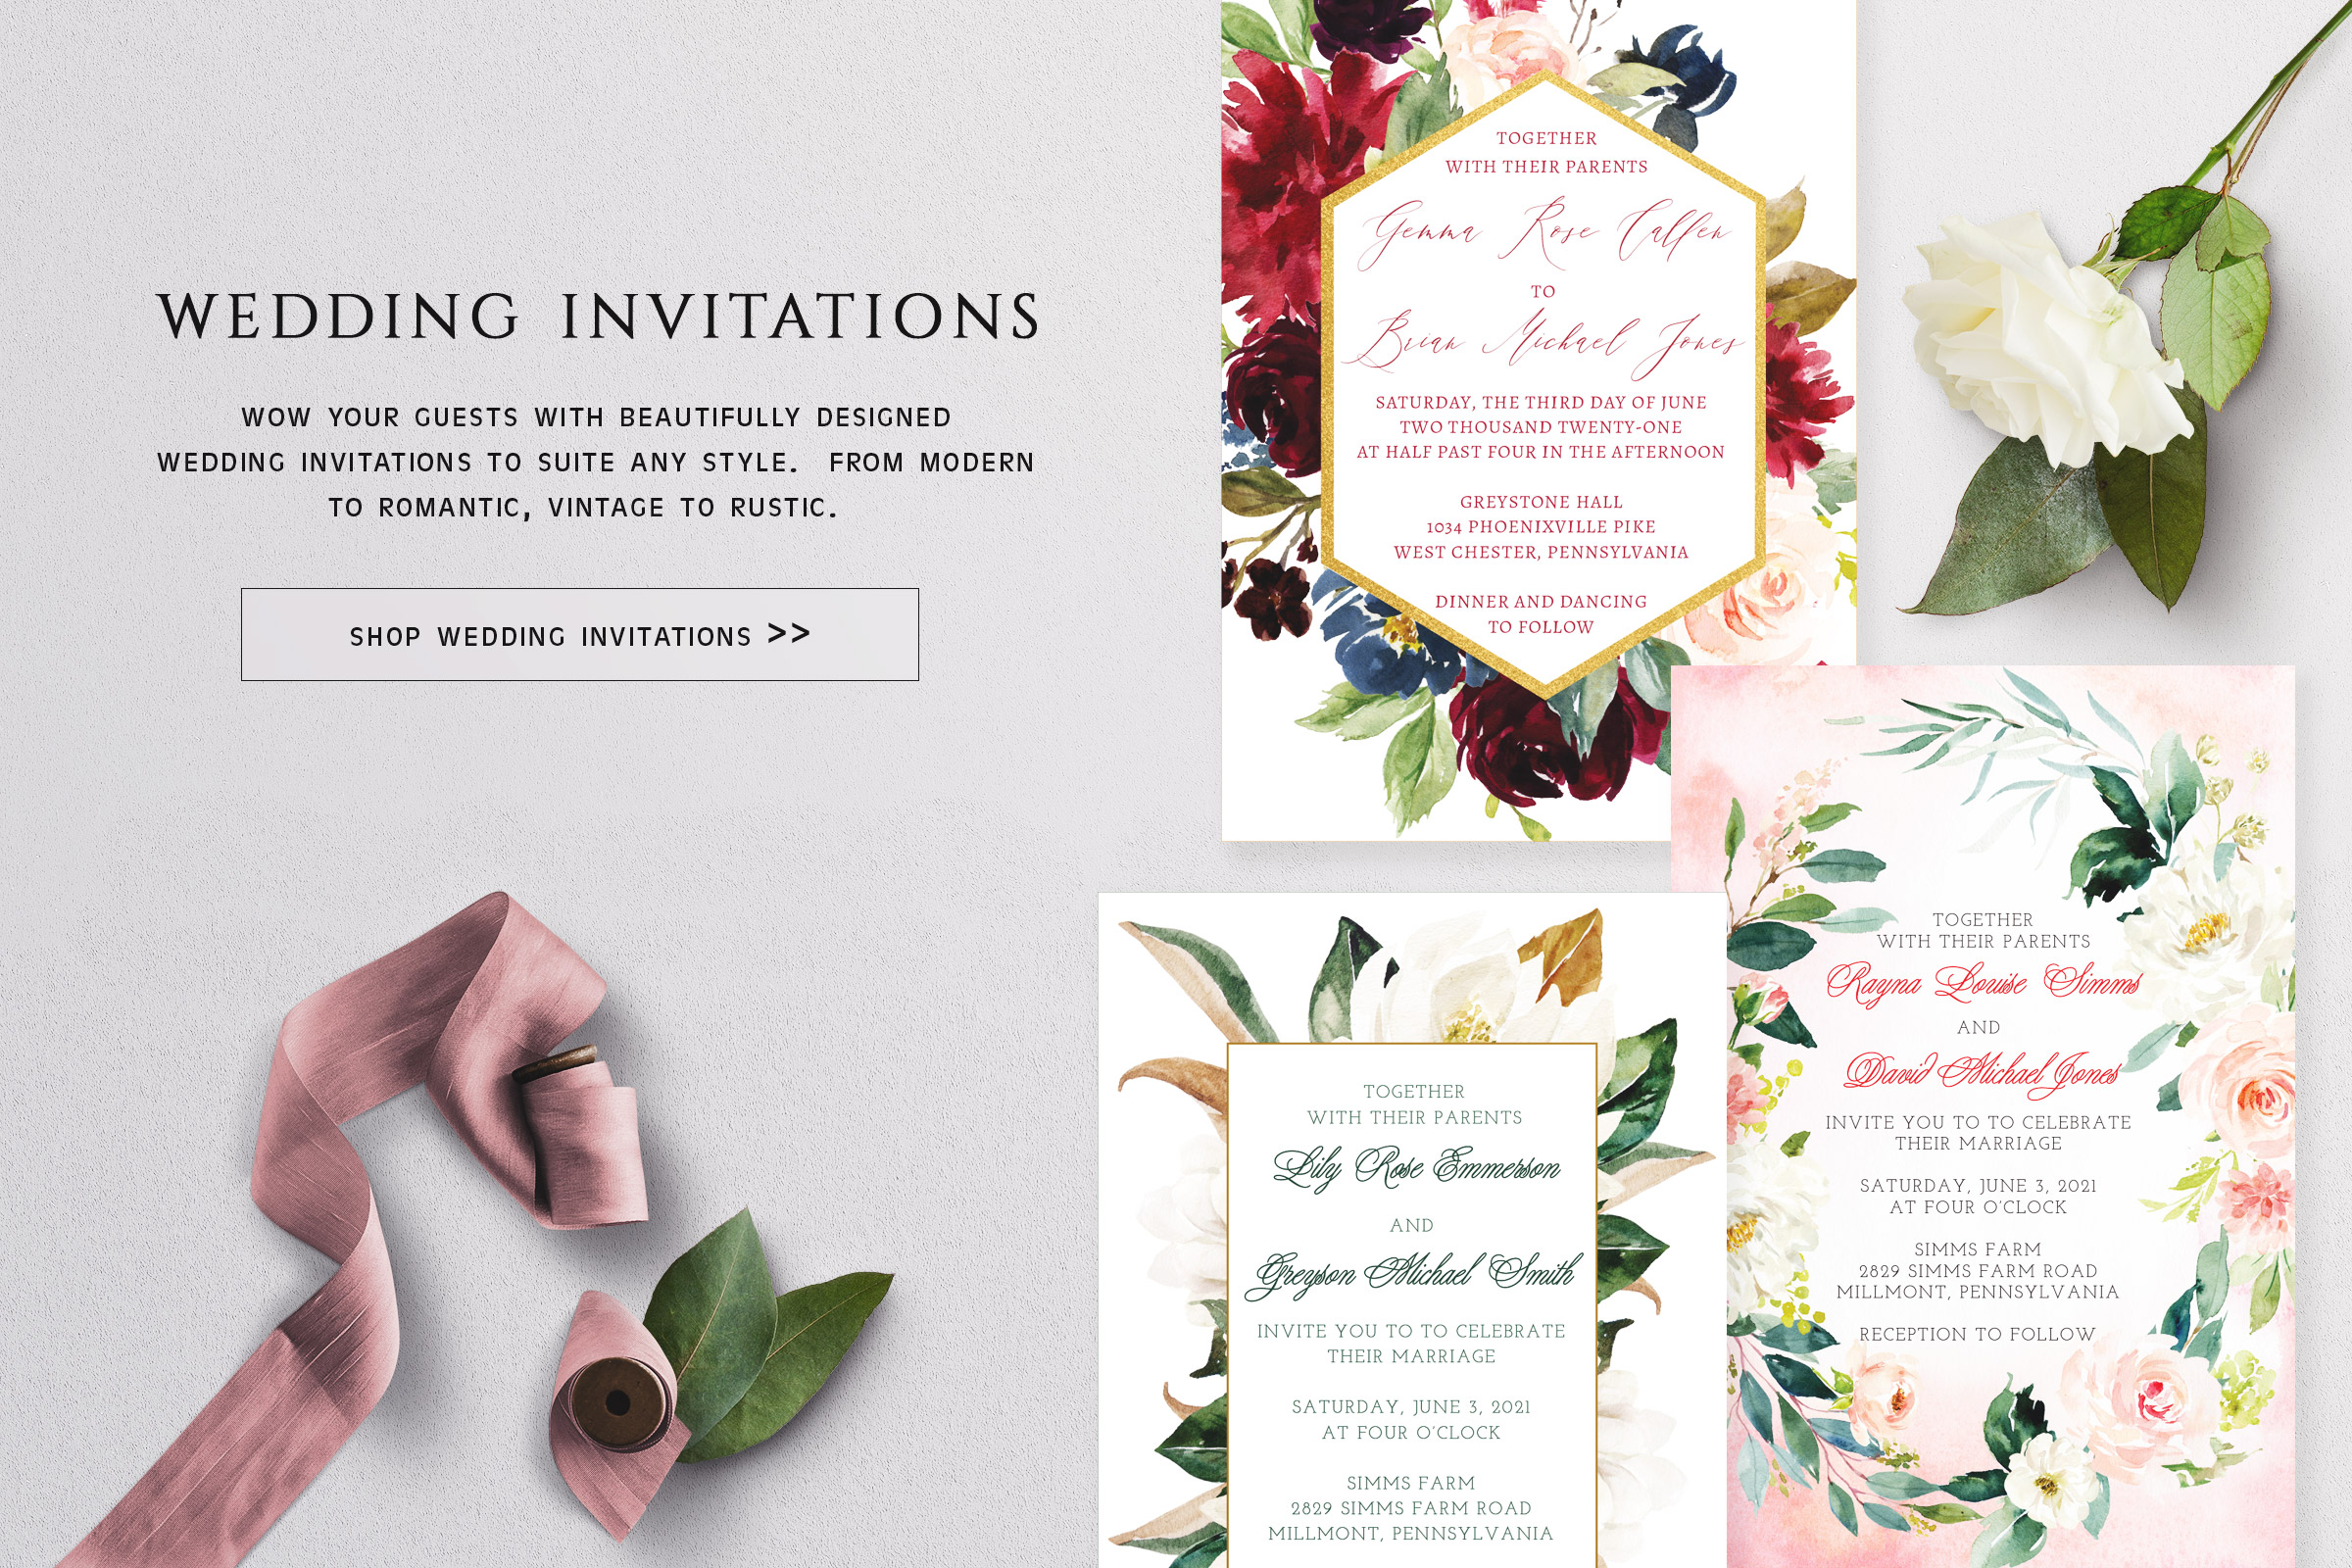 wedding-invitation-wow-your-guests